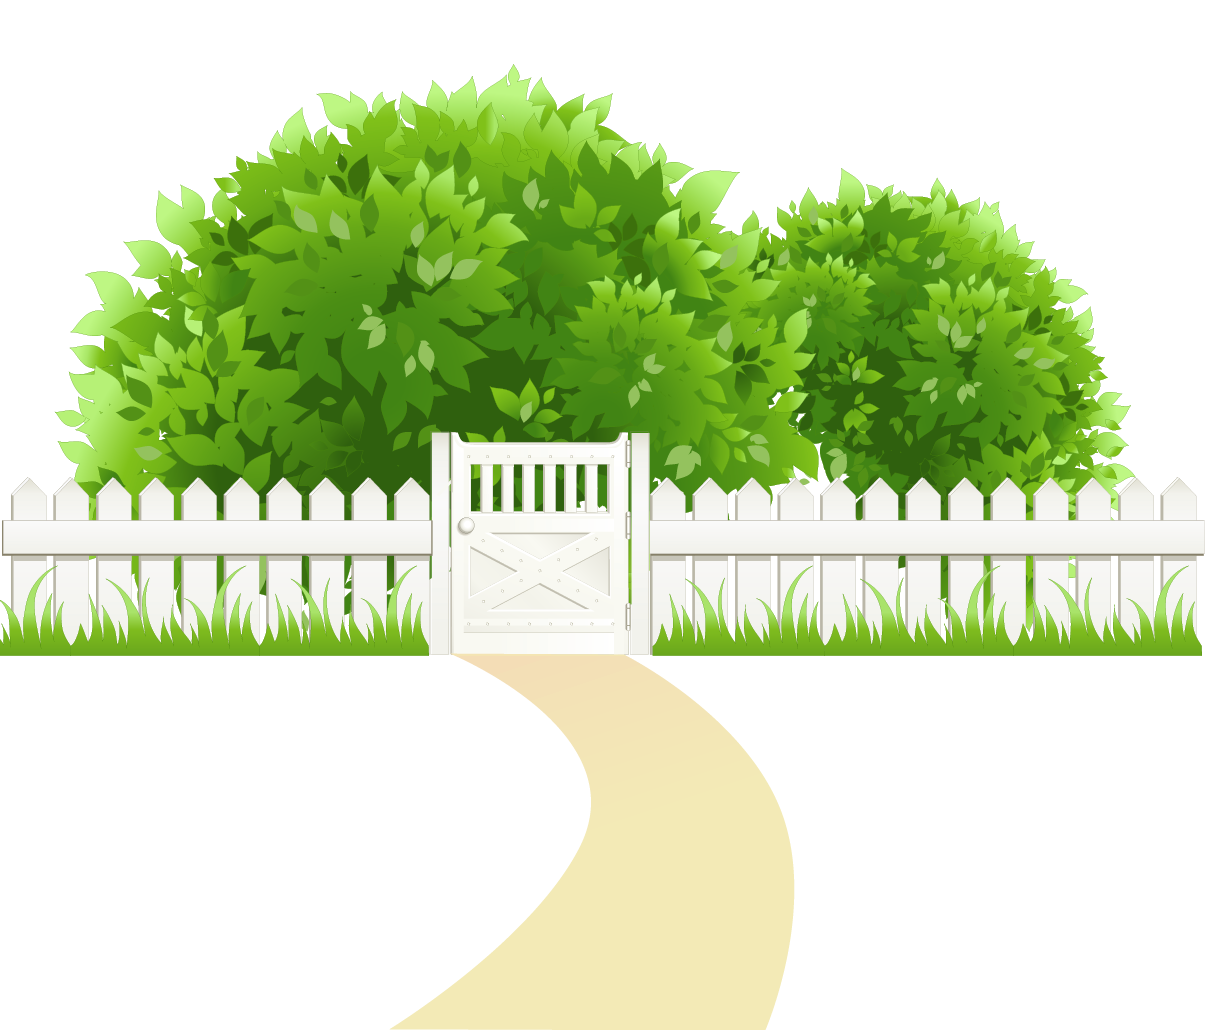 Stone clipart dirt path. With fence and trees